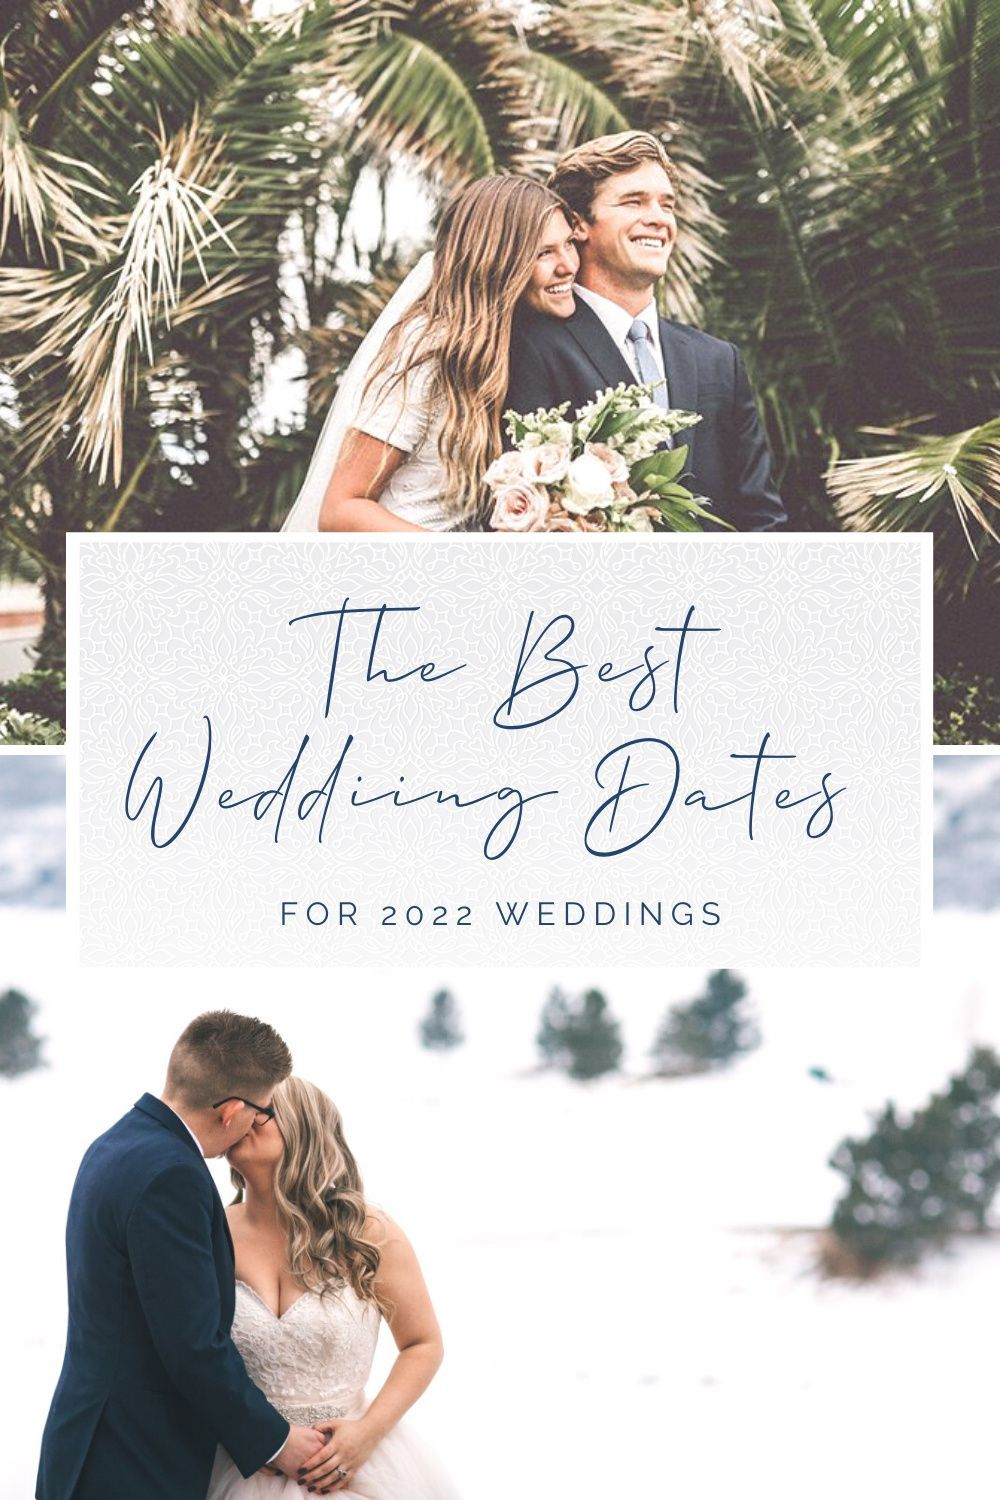 2022 Wedding Dates Find The Right One For You In 2020 Wedding Easy Wedding Planning Wedding Options